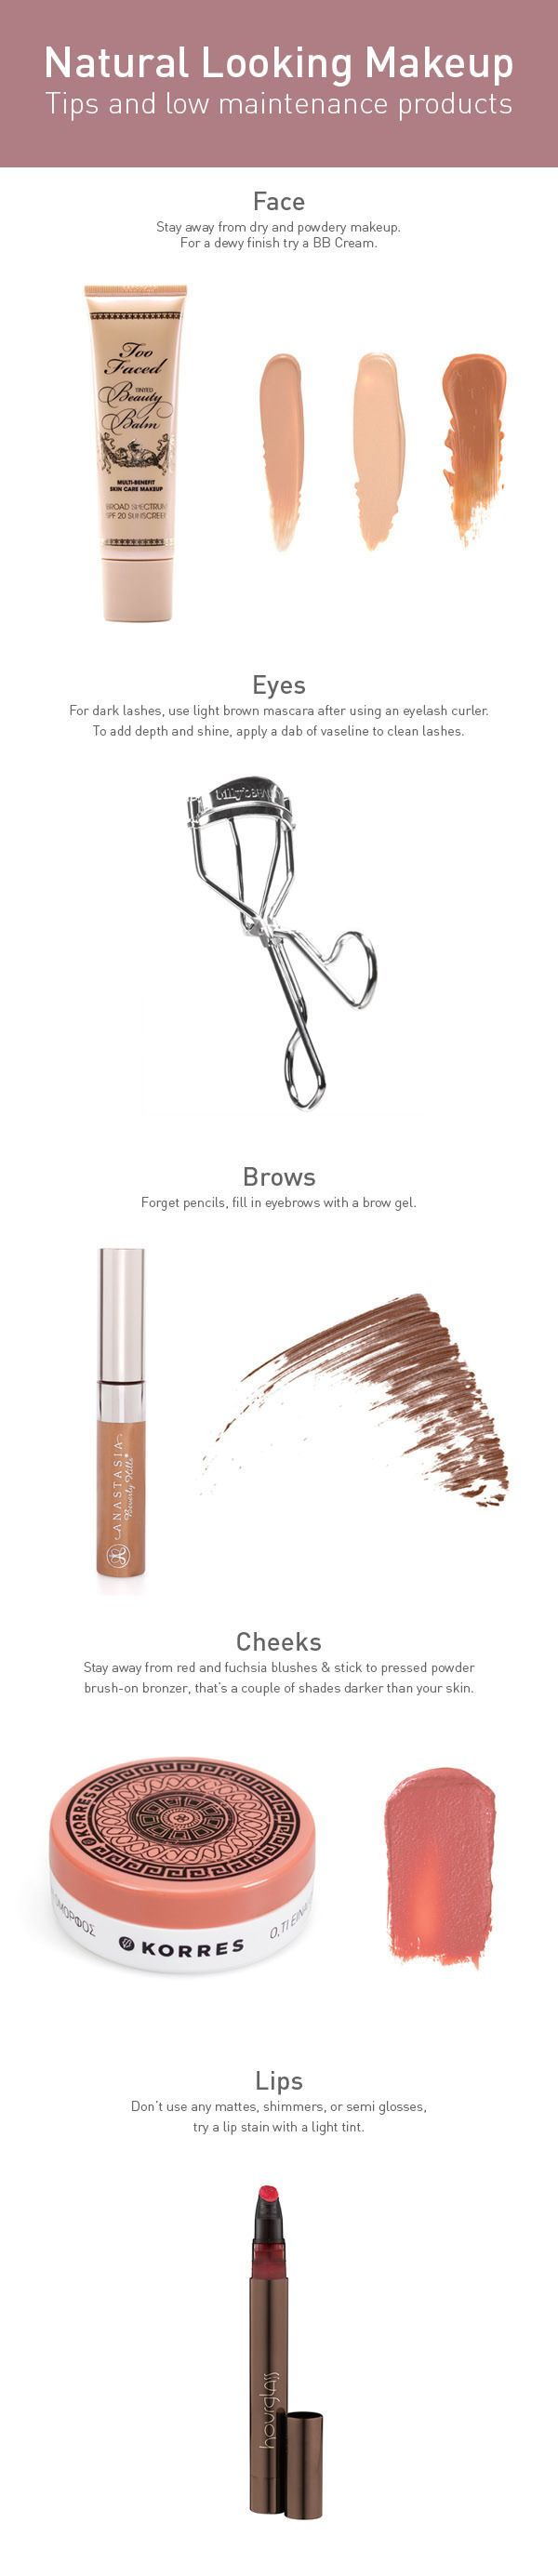 Fakeup Makeup: Easy Tips and Low-Maintenance Products for a Better Bare Look